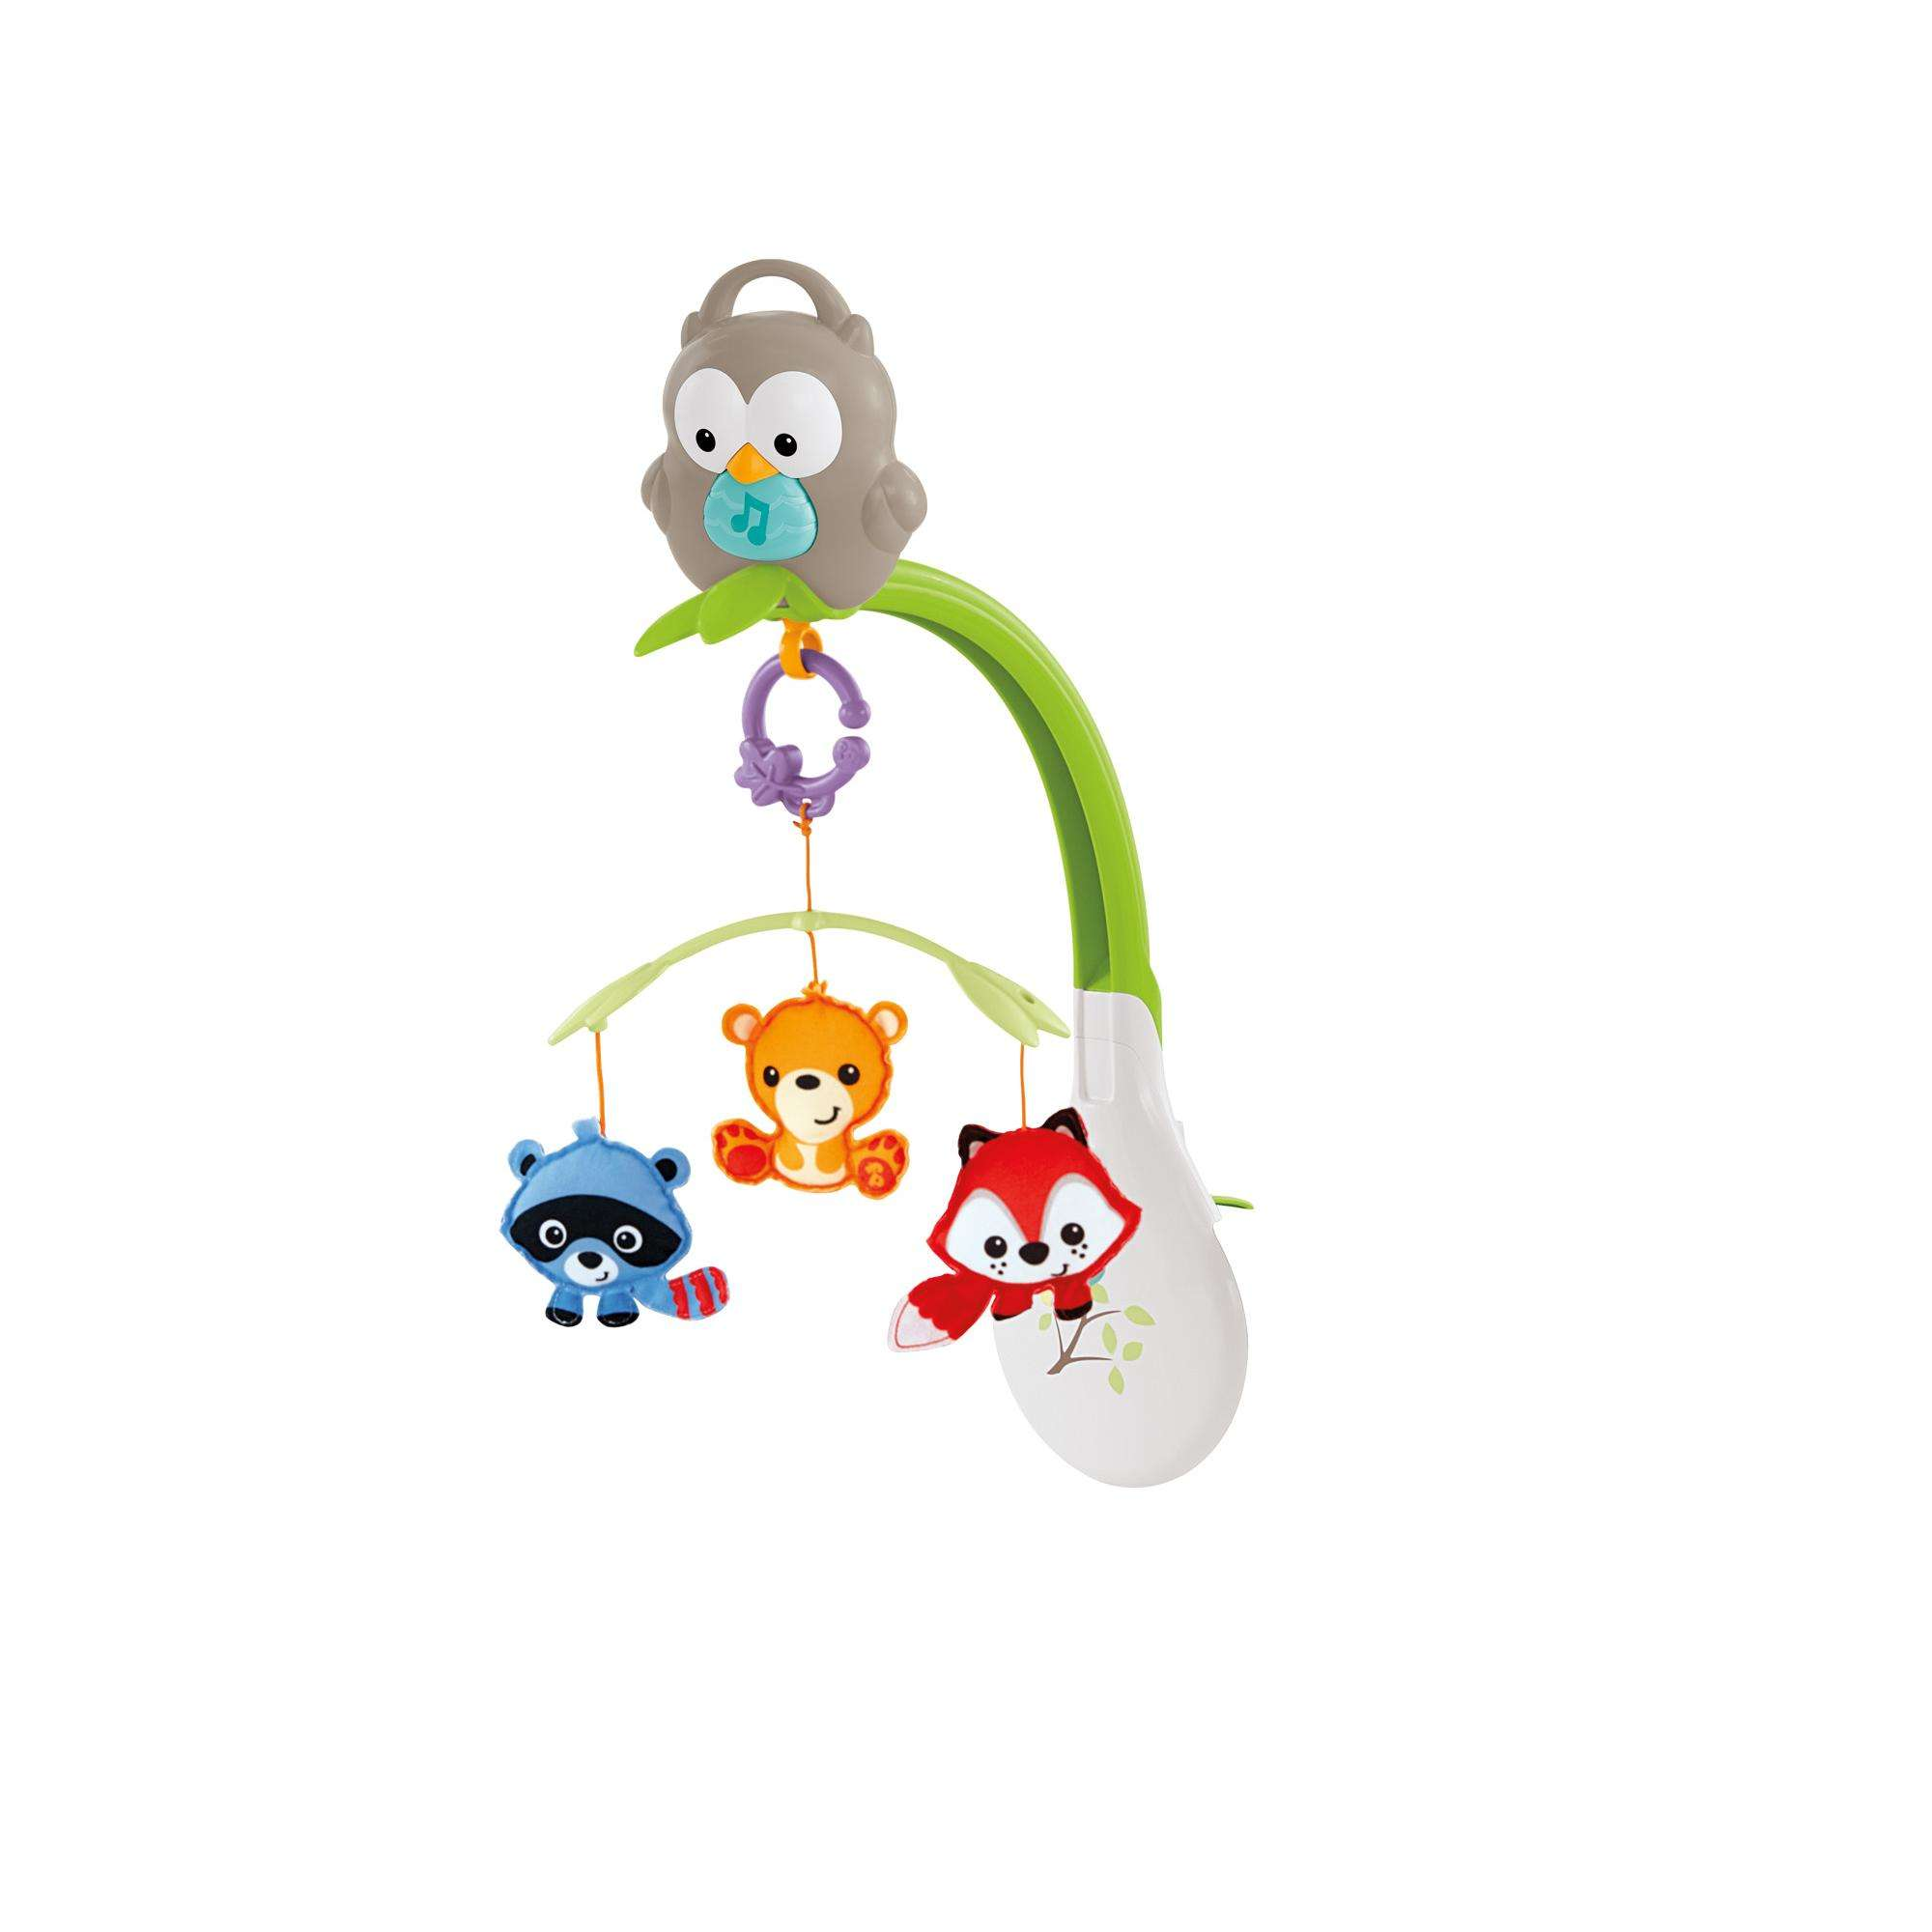 Fisher Price Woodland Friends 3-in-1 Musical Mobile by Fisher-Price